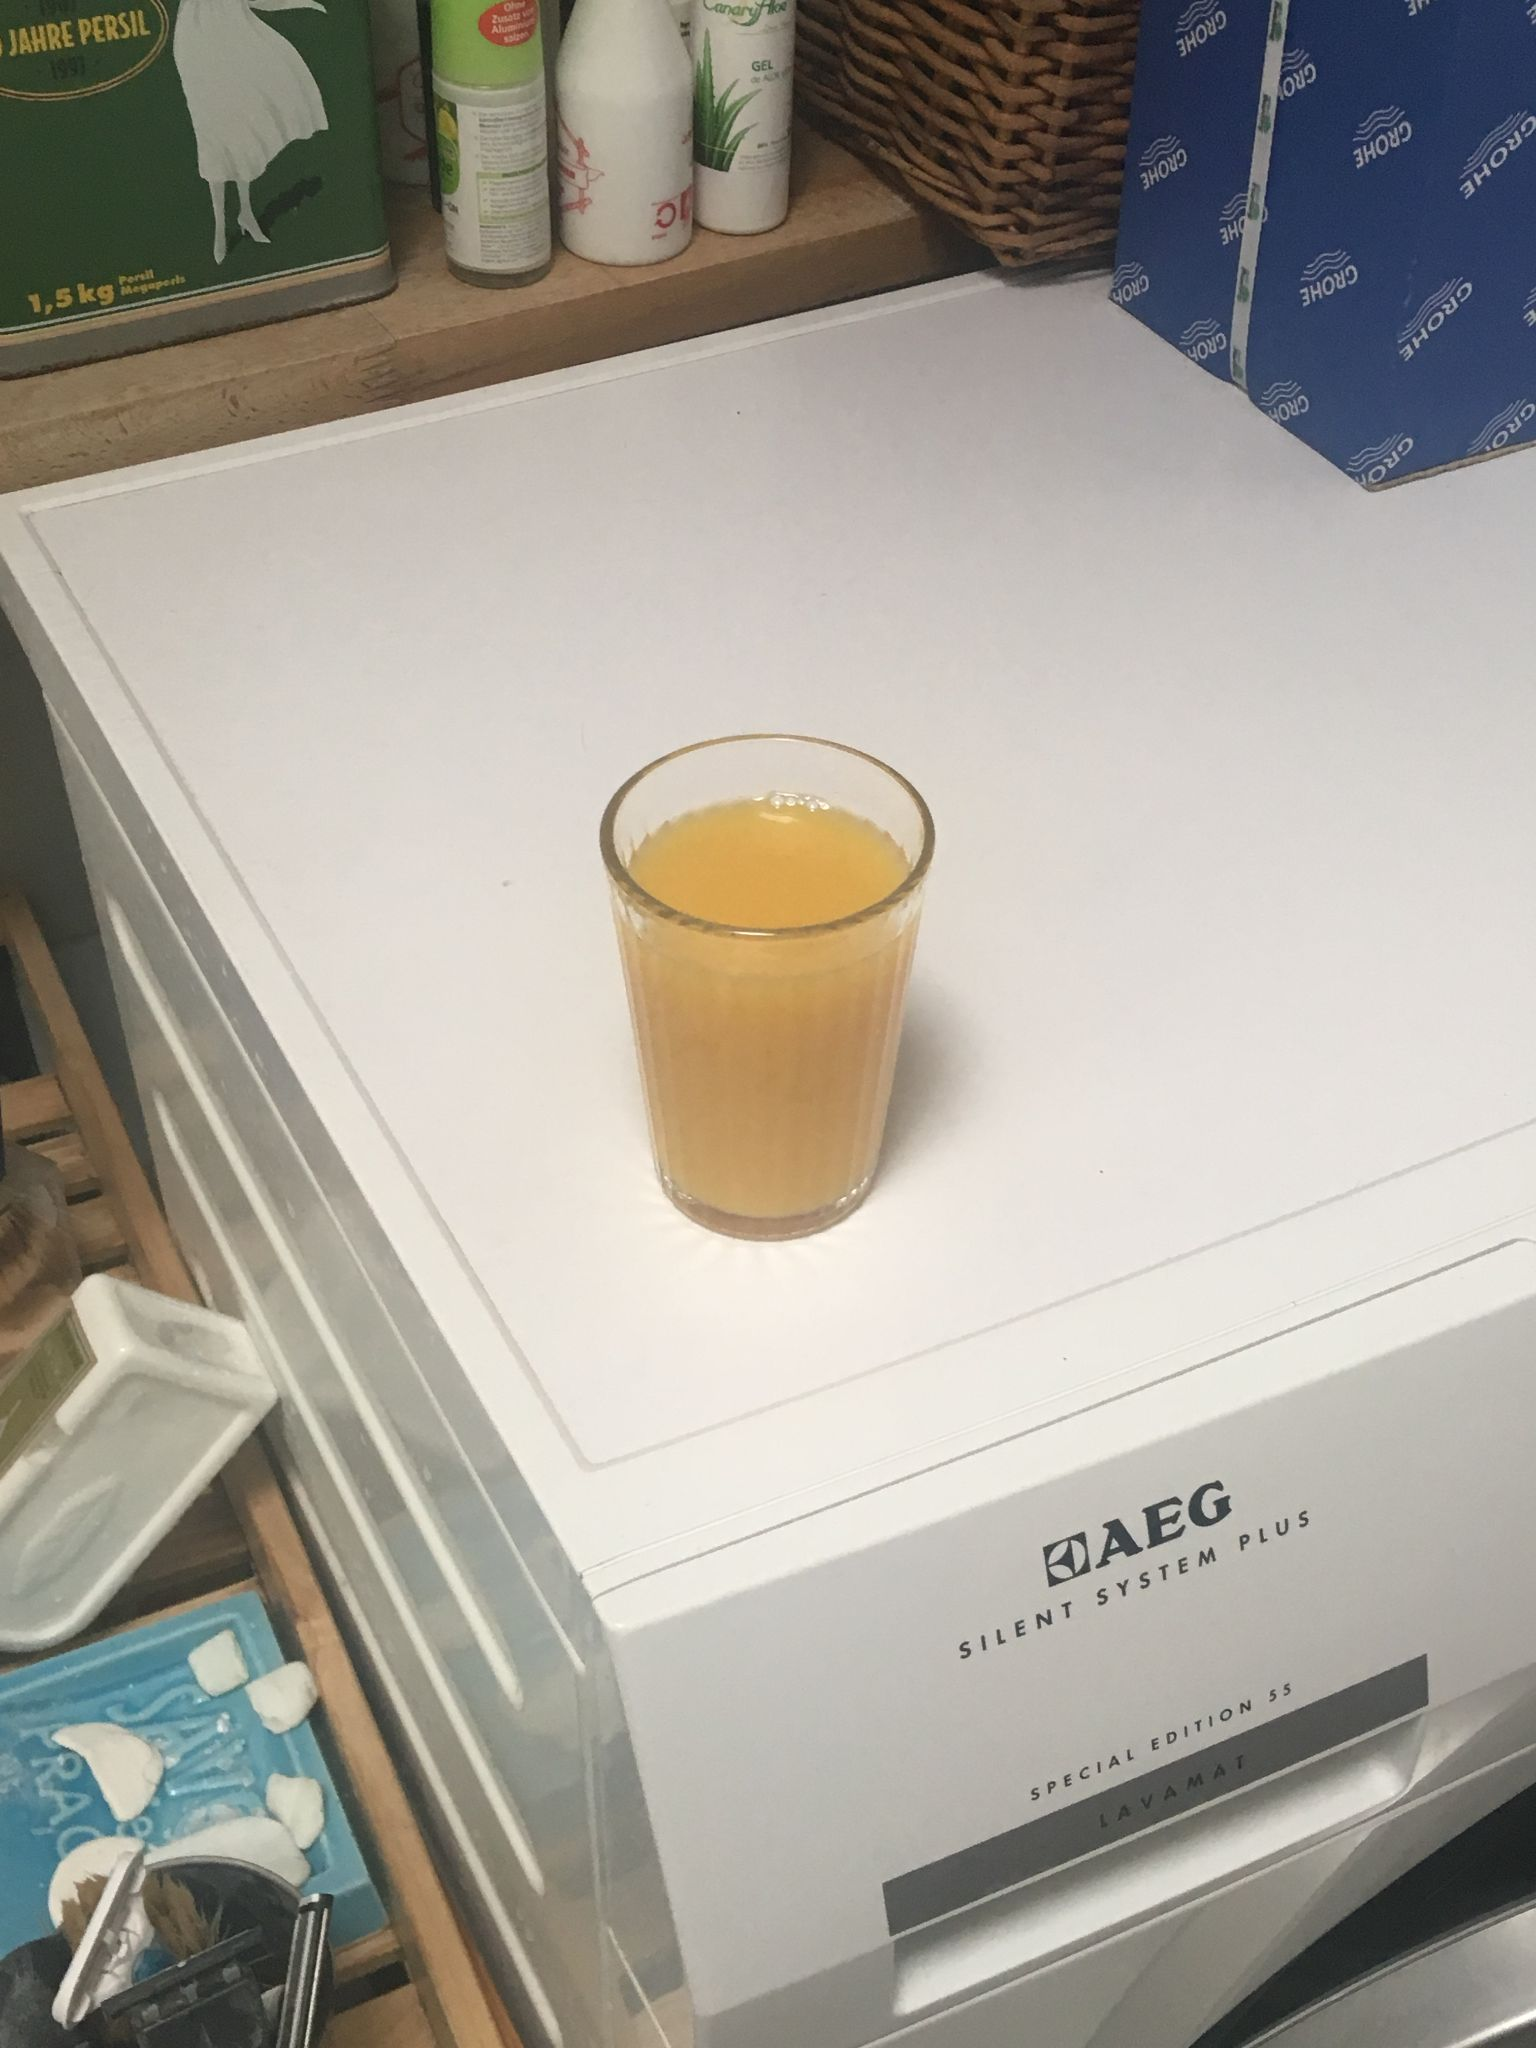 A glass of orange juice on a washing machine.  There is clutter around and on the machine.